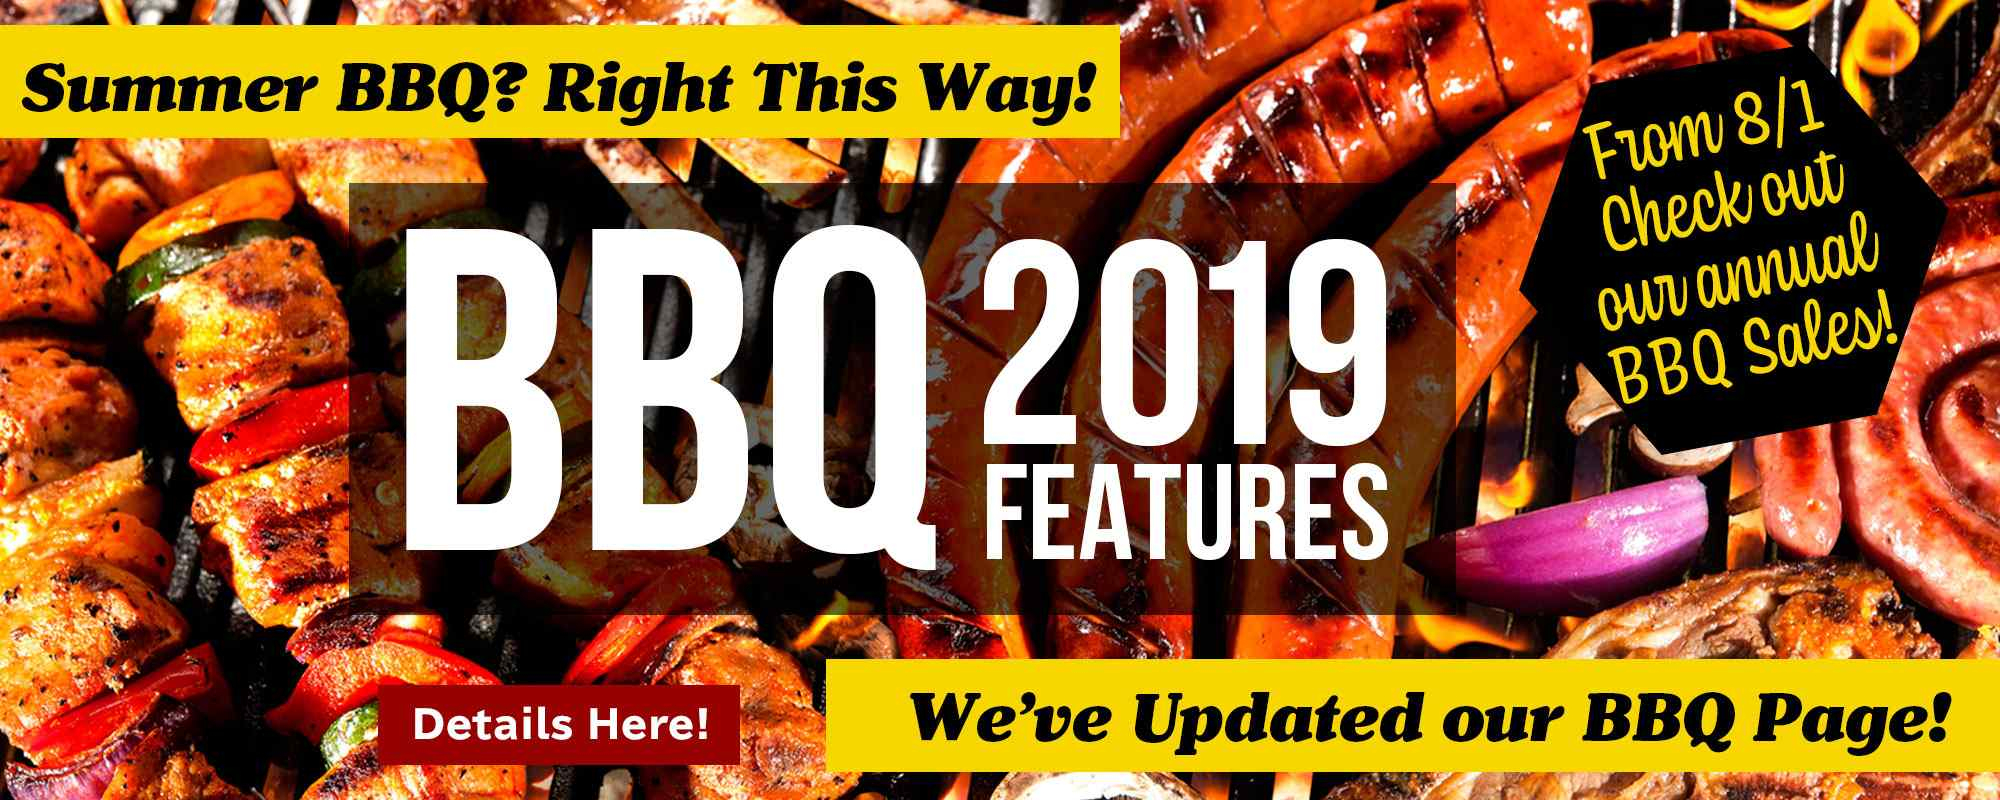 New BBQ page